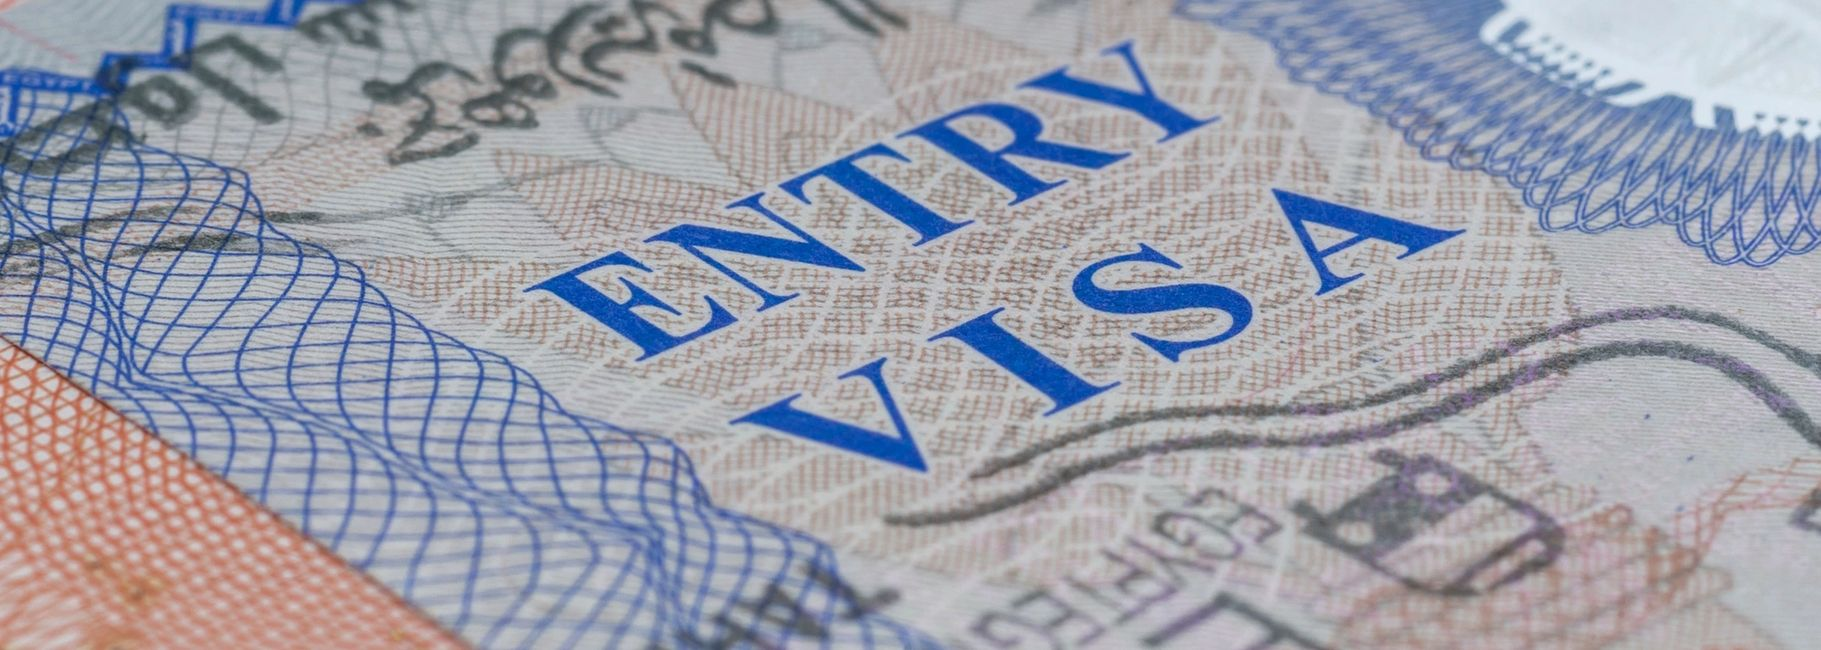 Are you a foreign national or green card holder traveling to the EU ?  You need visa medical plan